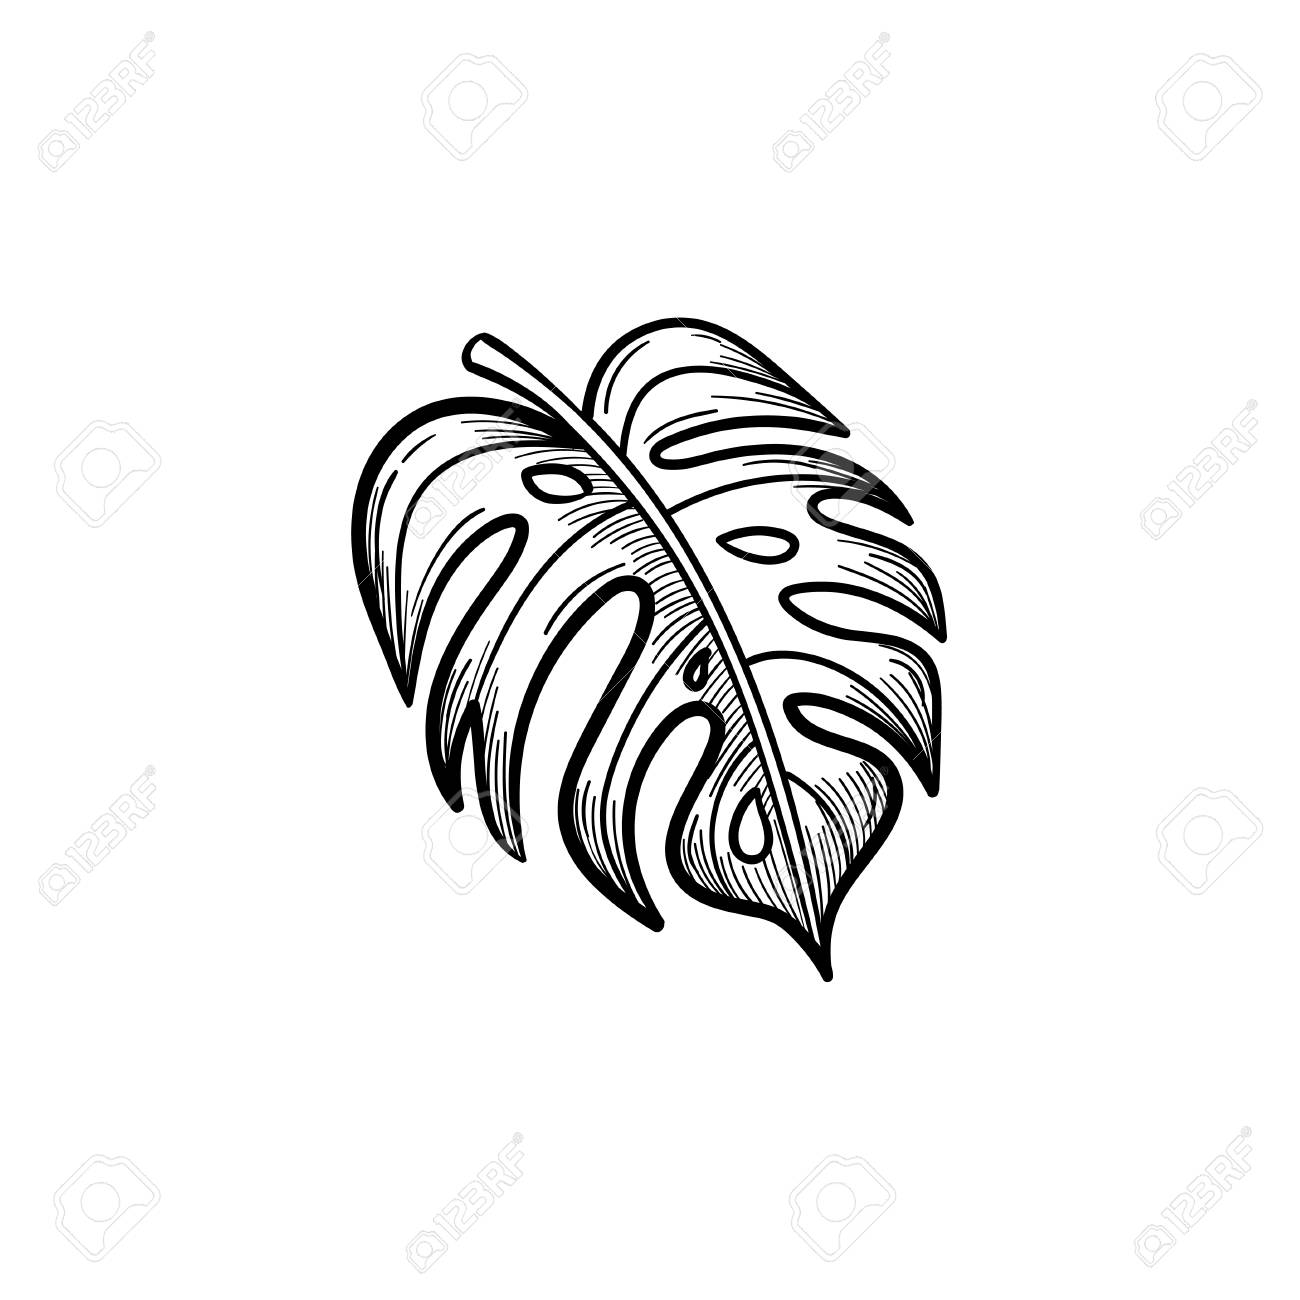 Vector Hand Drawn Palm Leaf Outline Doodle Icon Palm Leaf Sketch Royalty Free Cliparts Vectors And Stock Illustration Image 91363432 Vector palm beach tree leaves jungle botanical flowers. vector hand drawn palm leaf outline doodle icon palm leaf sketch